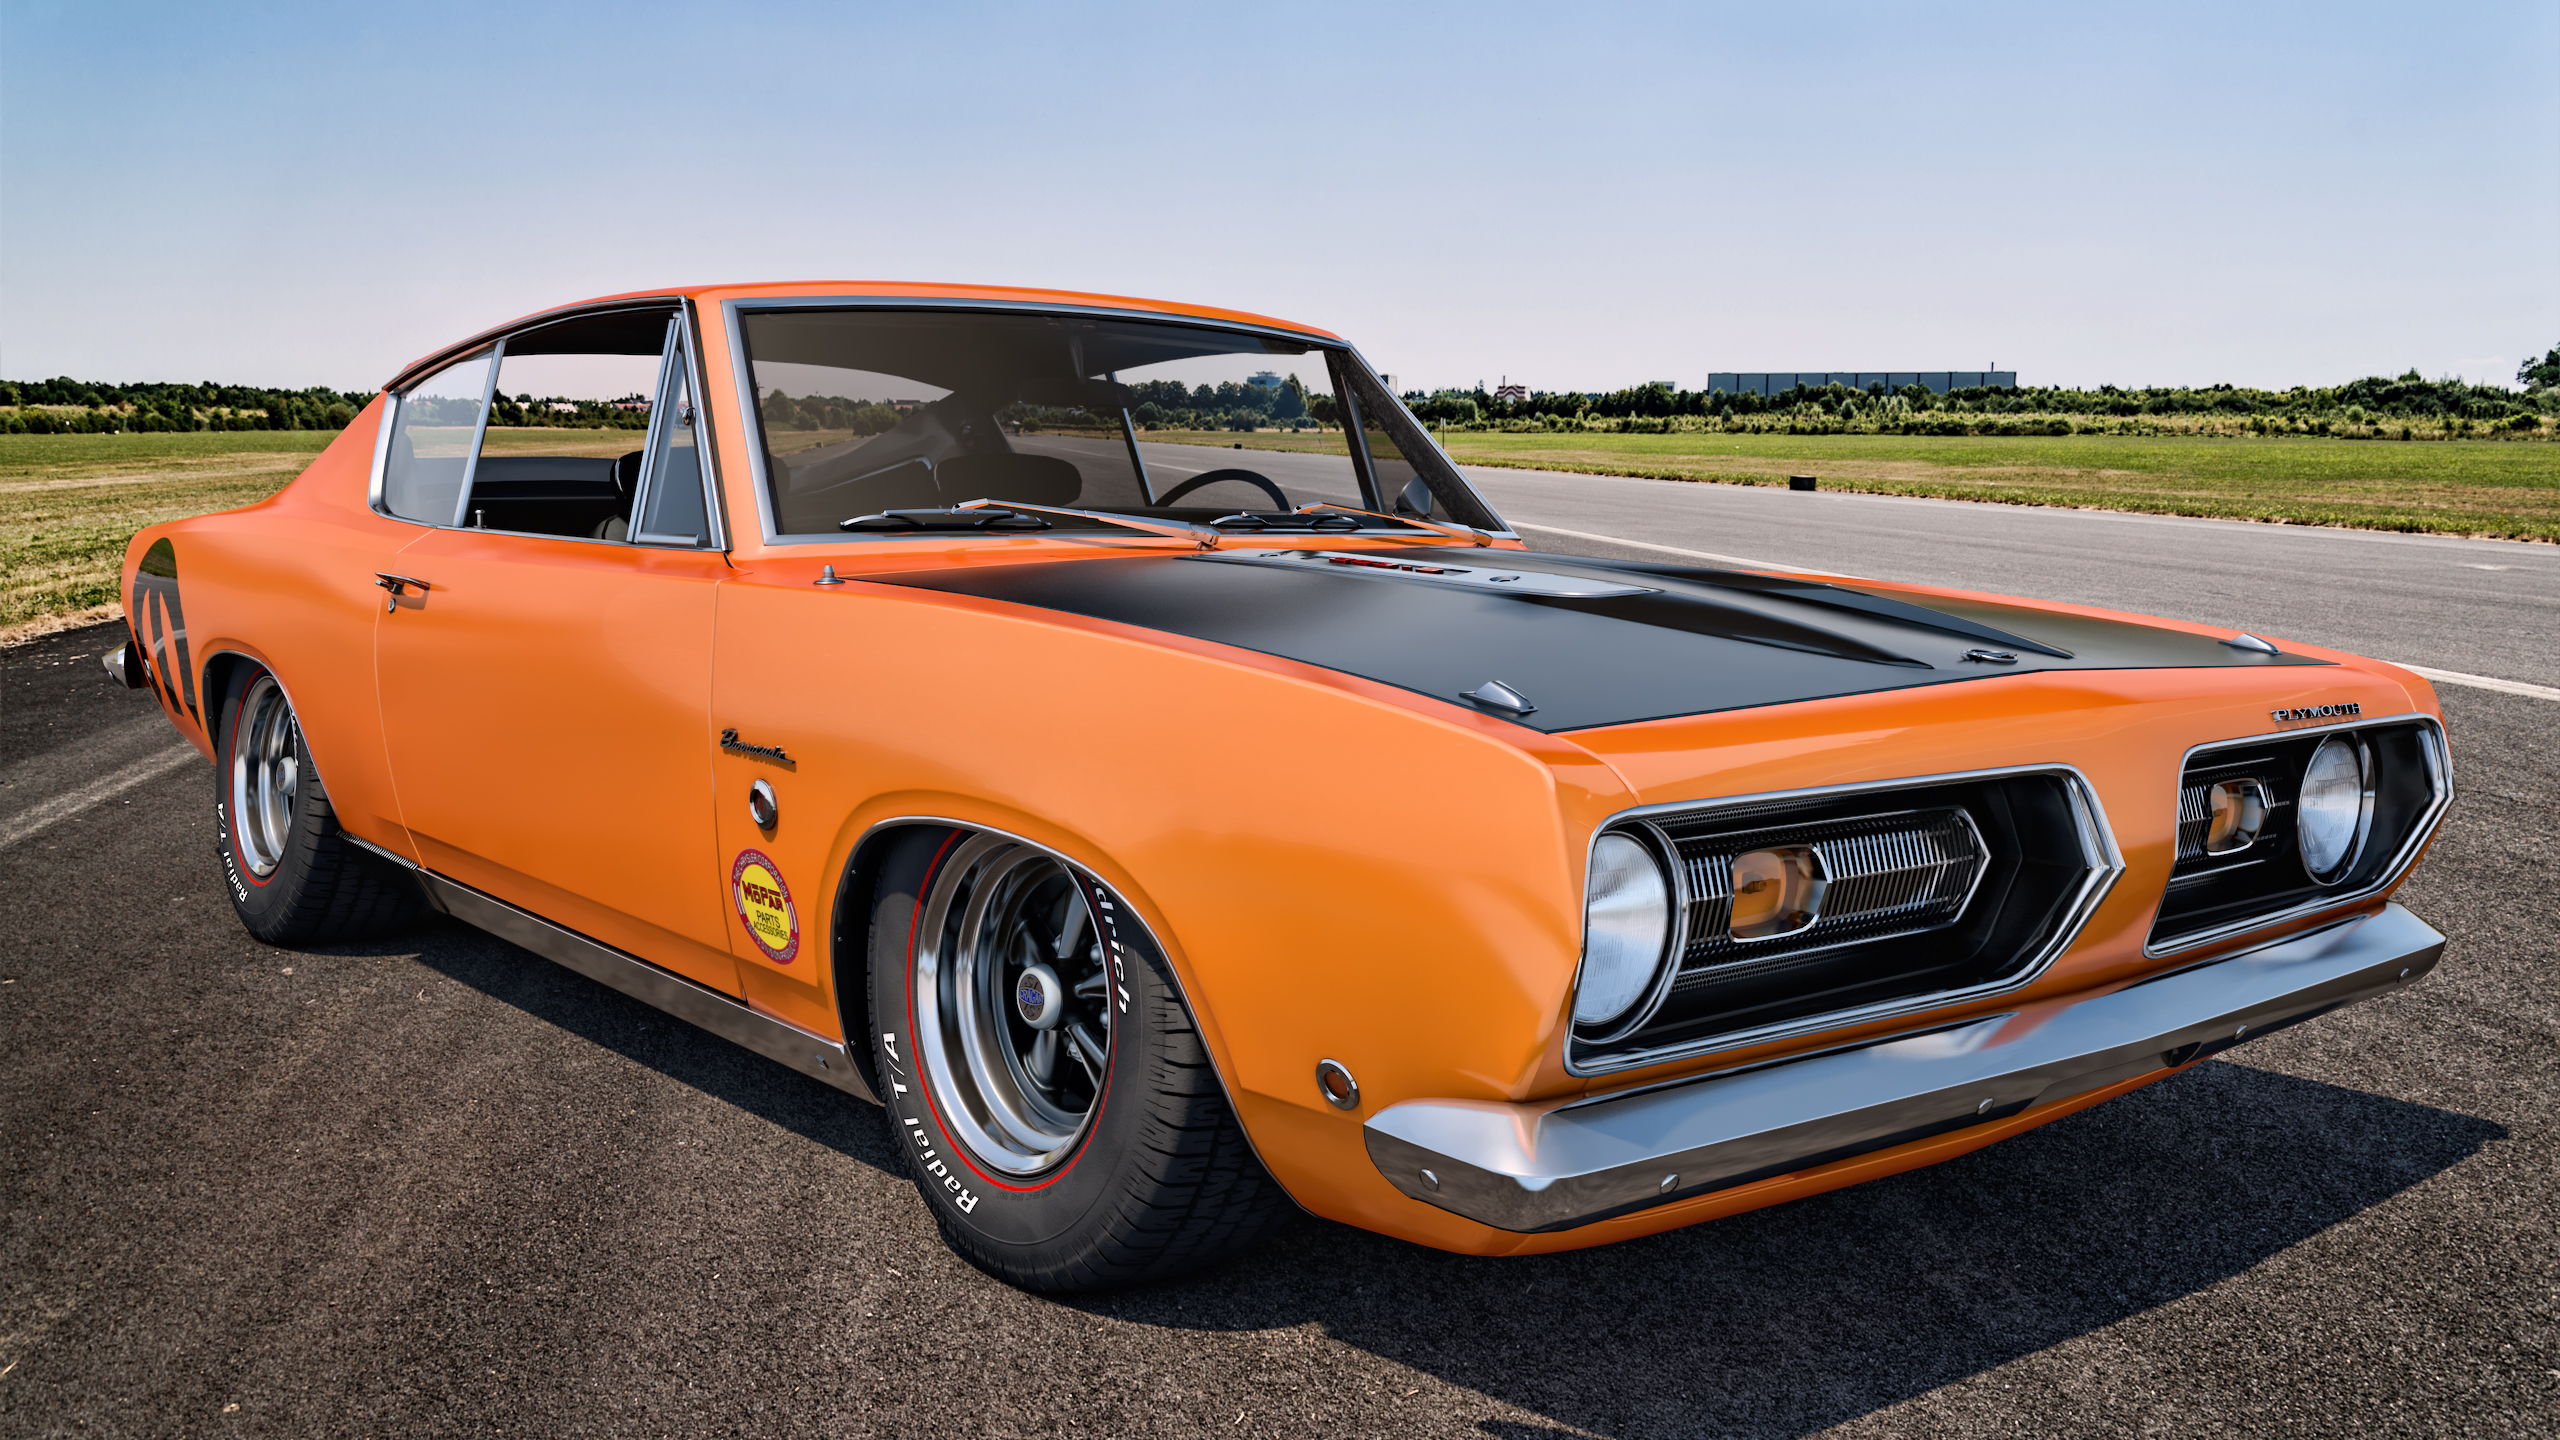 2017 Dodge Barracuda Concept >> 1968 Plymouth Barracuda by SamCurry on DeviantArt